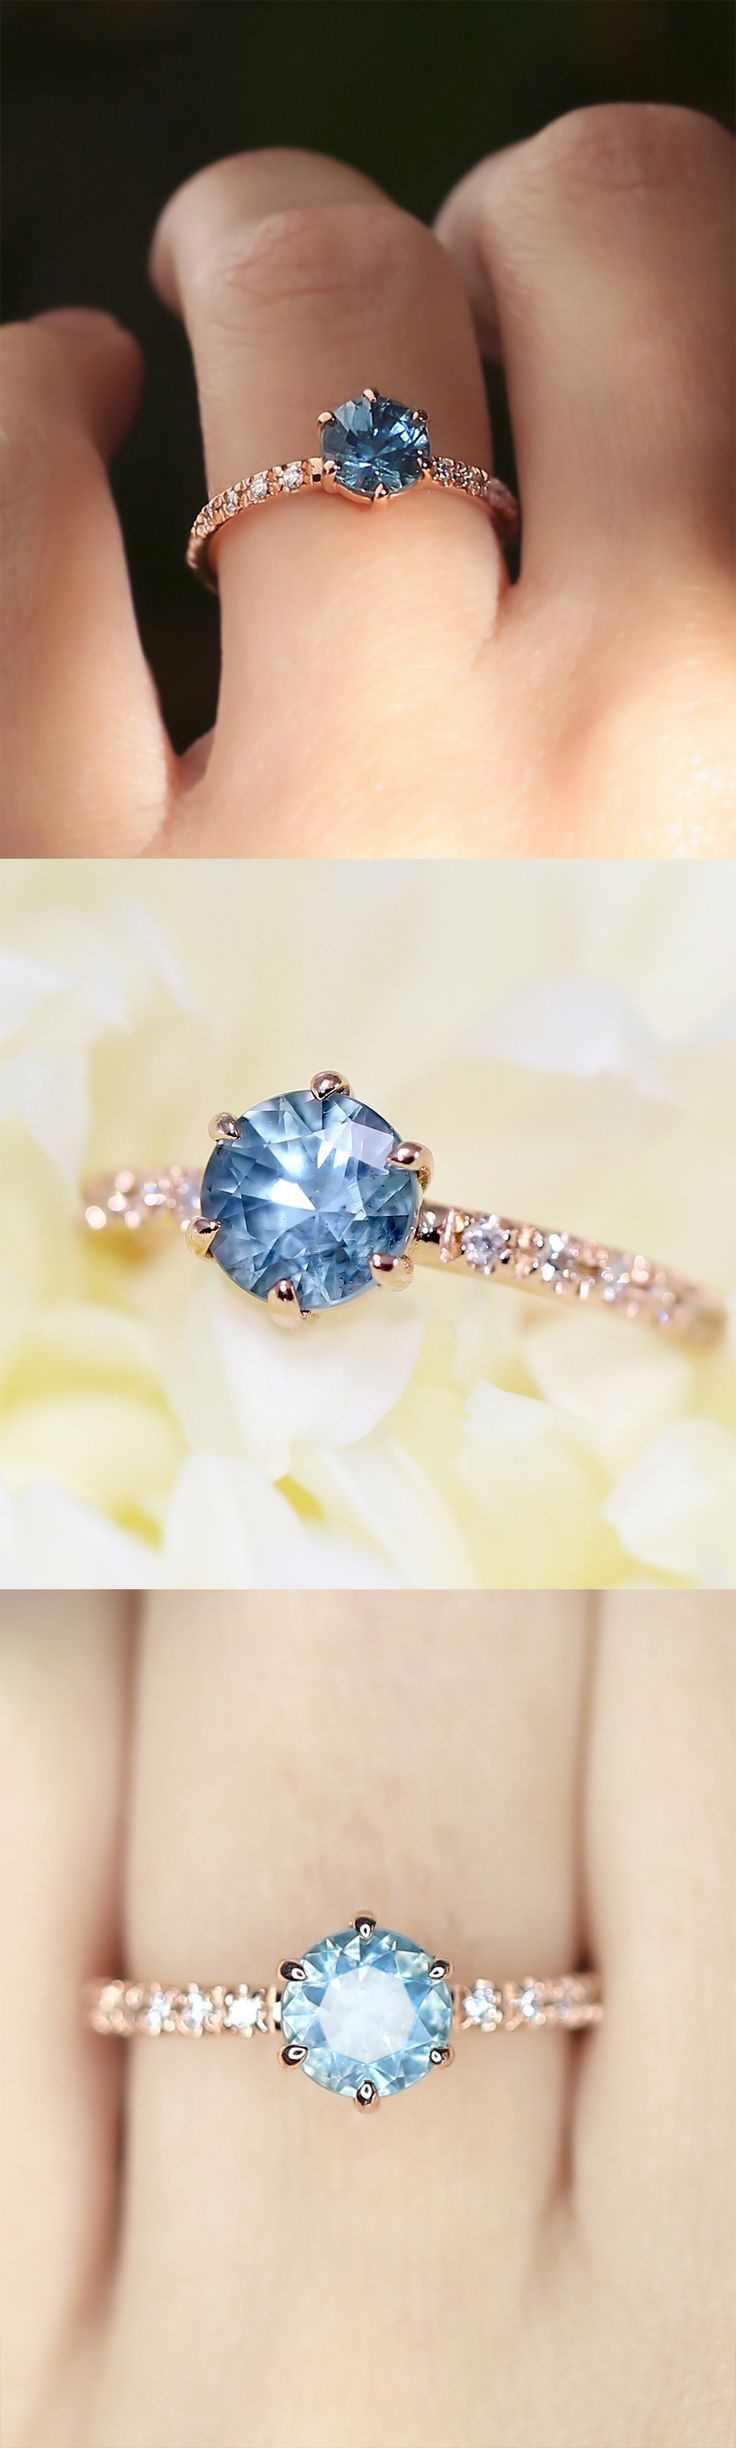 We set this lovely Blue Montana Sapphire in our modern interpretation of a Georgian style Collet ring. The glowing blue, grey, and green colors of this unique 1.20 carat Montana Sapphire are perfectly complimented by the six prong 14k recycled Rose Gold setting. The band is handset with vintage Single Cut Diamond pavé for additional glamour and sparkle. The overall effect is both classic and modern.